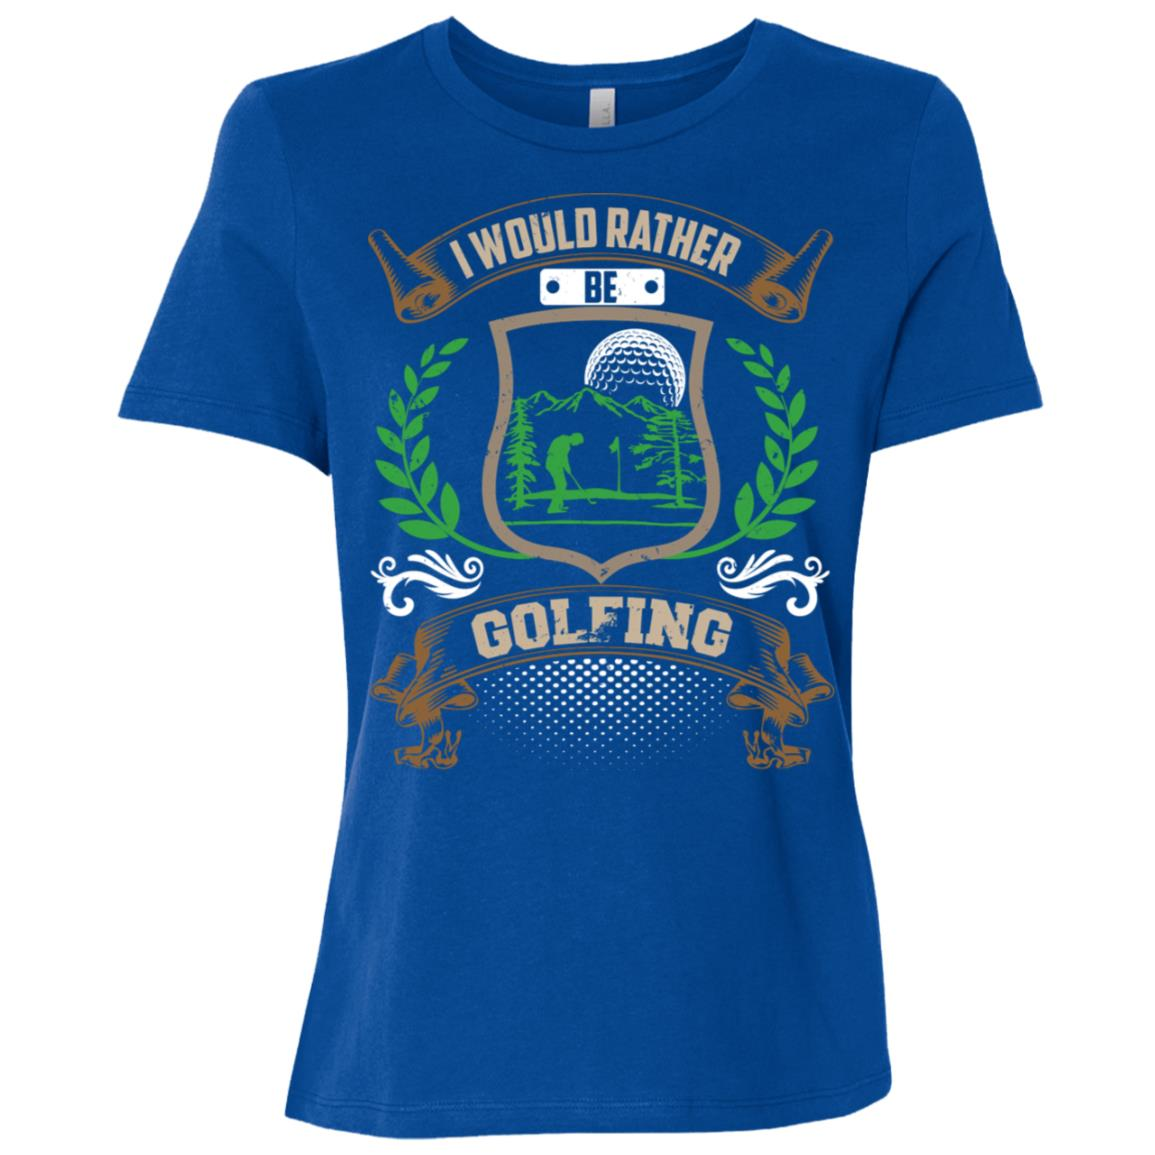 I Would Rather Be Golfing Women Short Sleeve T-Shirt